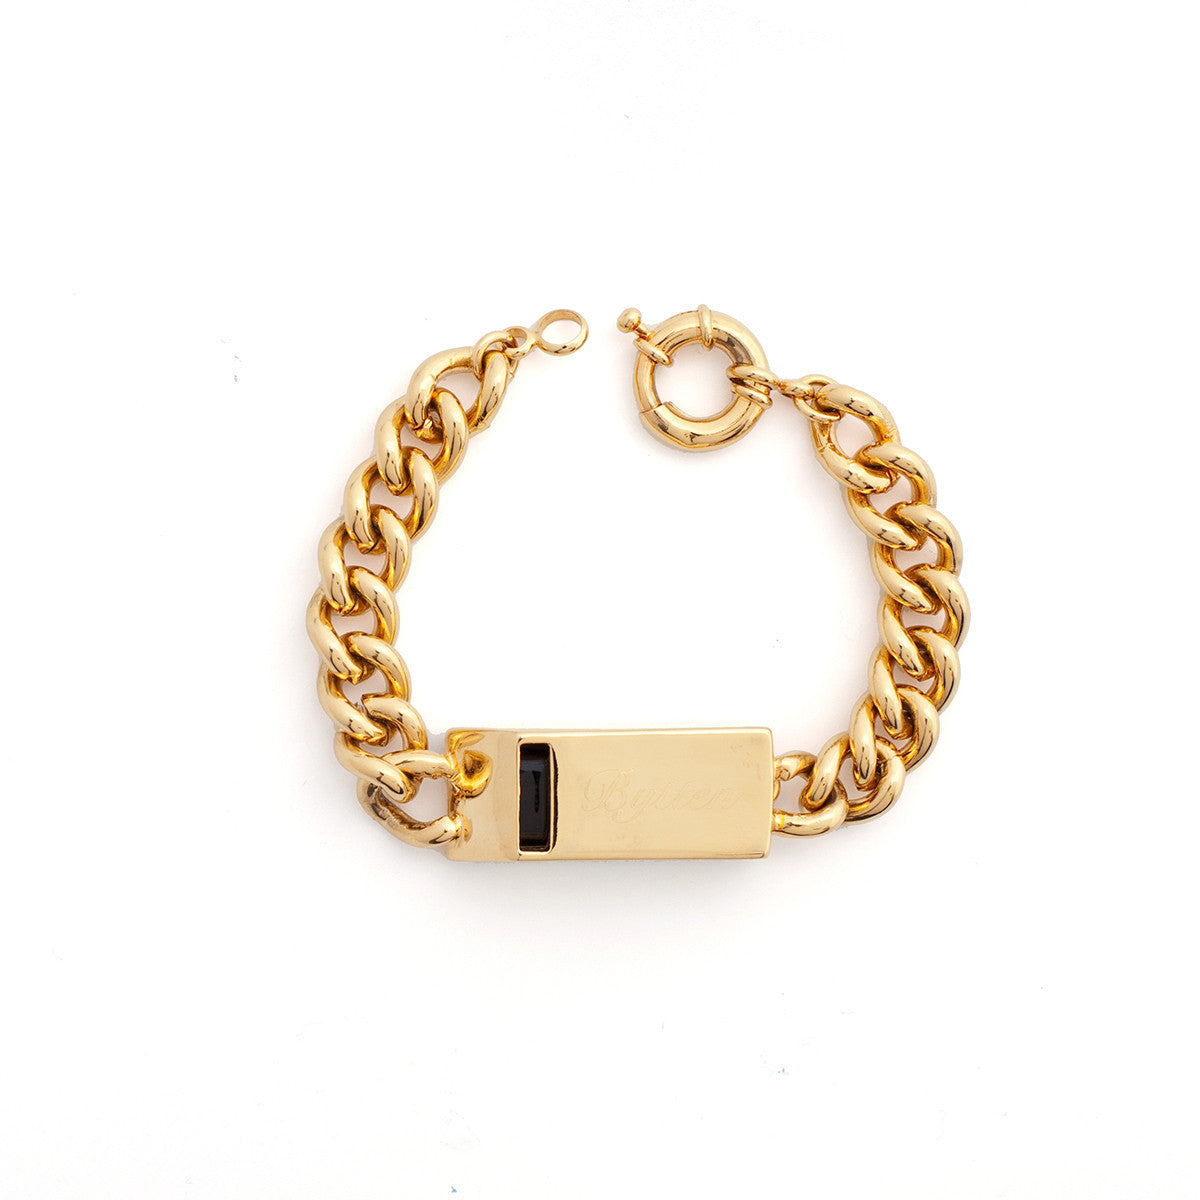 Bytten Jaclyn bracelet for Fitbit Flex - 18K gold